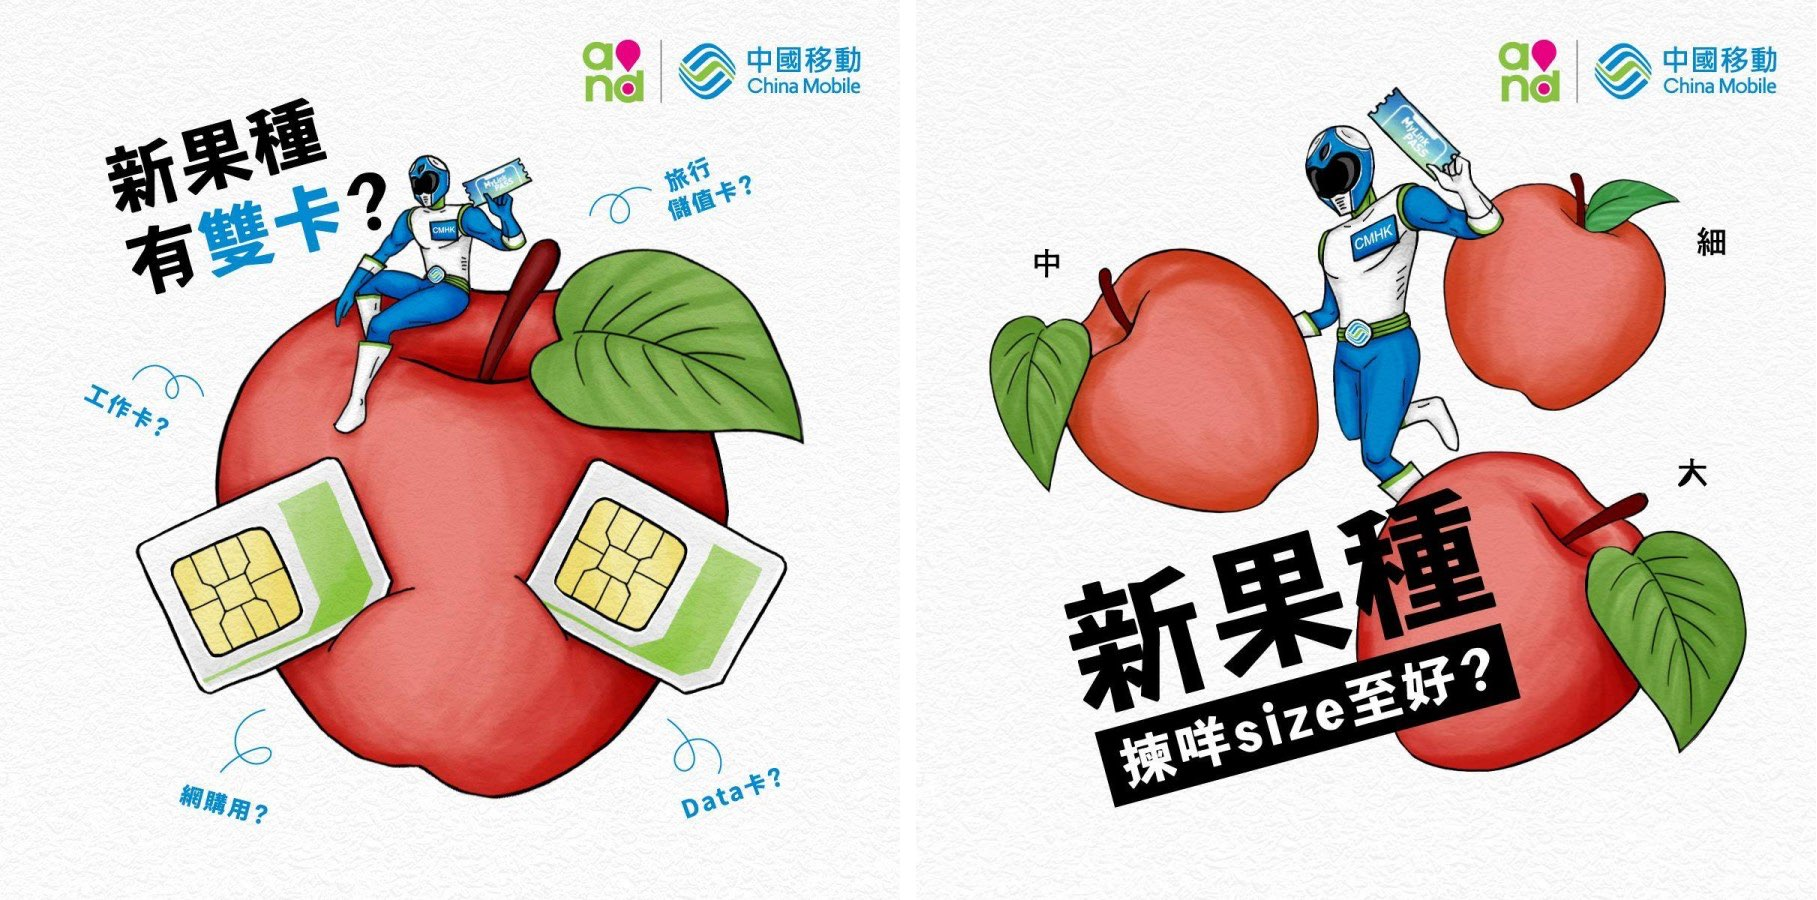 China Mobile's social media posts hyping dual-SIM support for upcoming iPhones